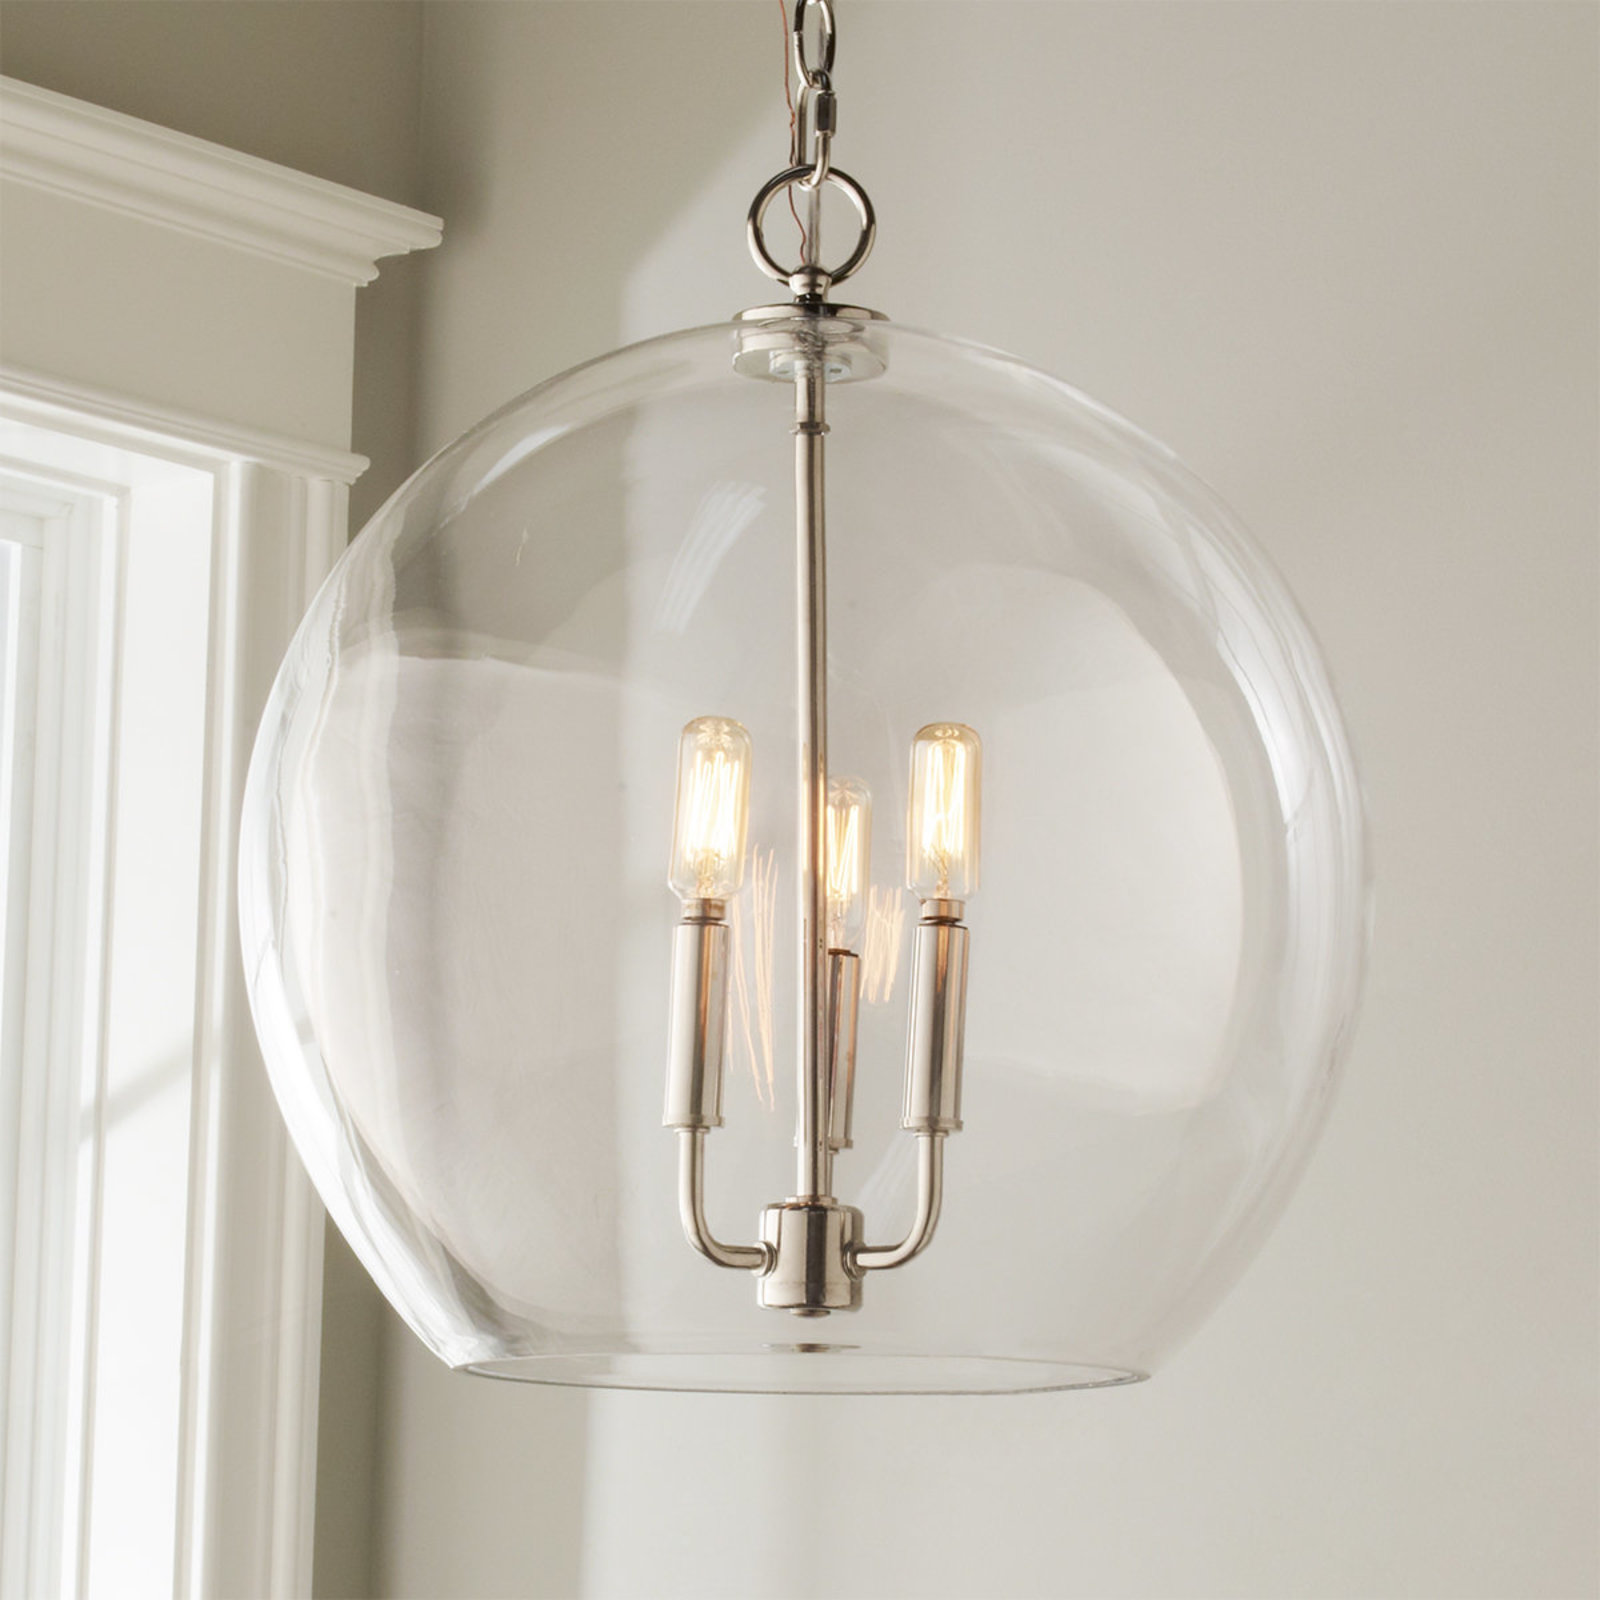 Luxury Interior Lighting Design with Glass Chandelier Shades: Replacement Globes For Light Fixtures | Glass Chandelier Shades | Replacement Sconce Shades